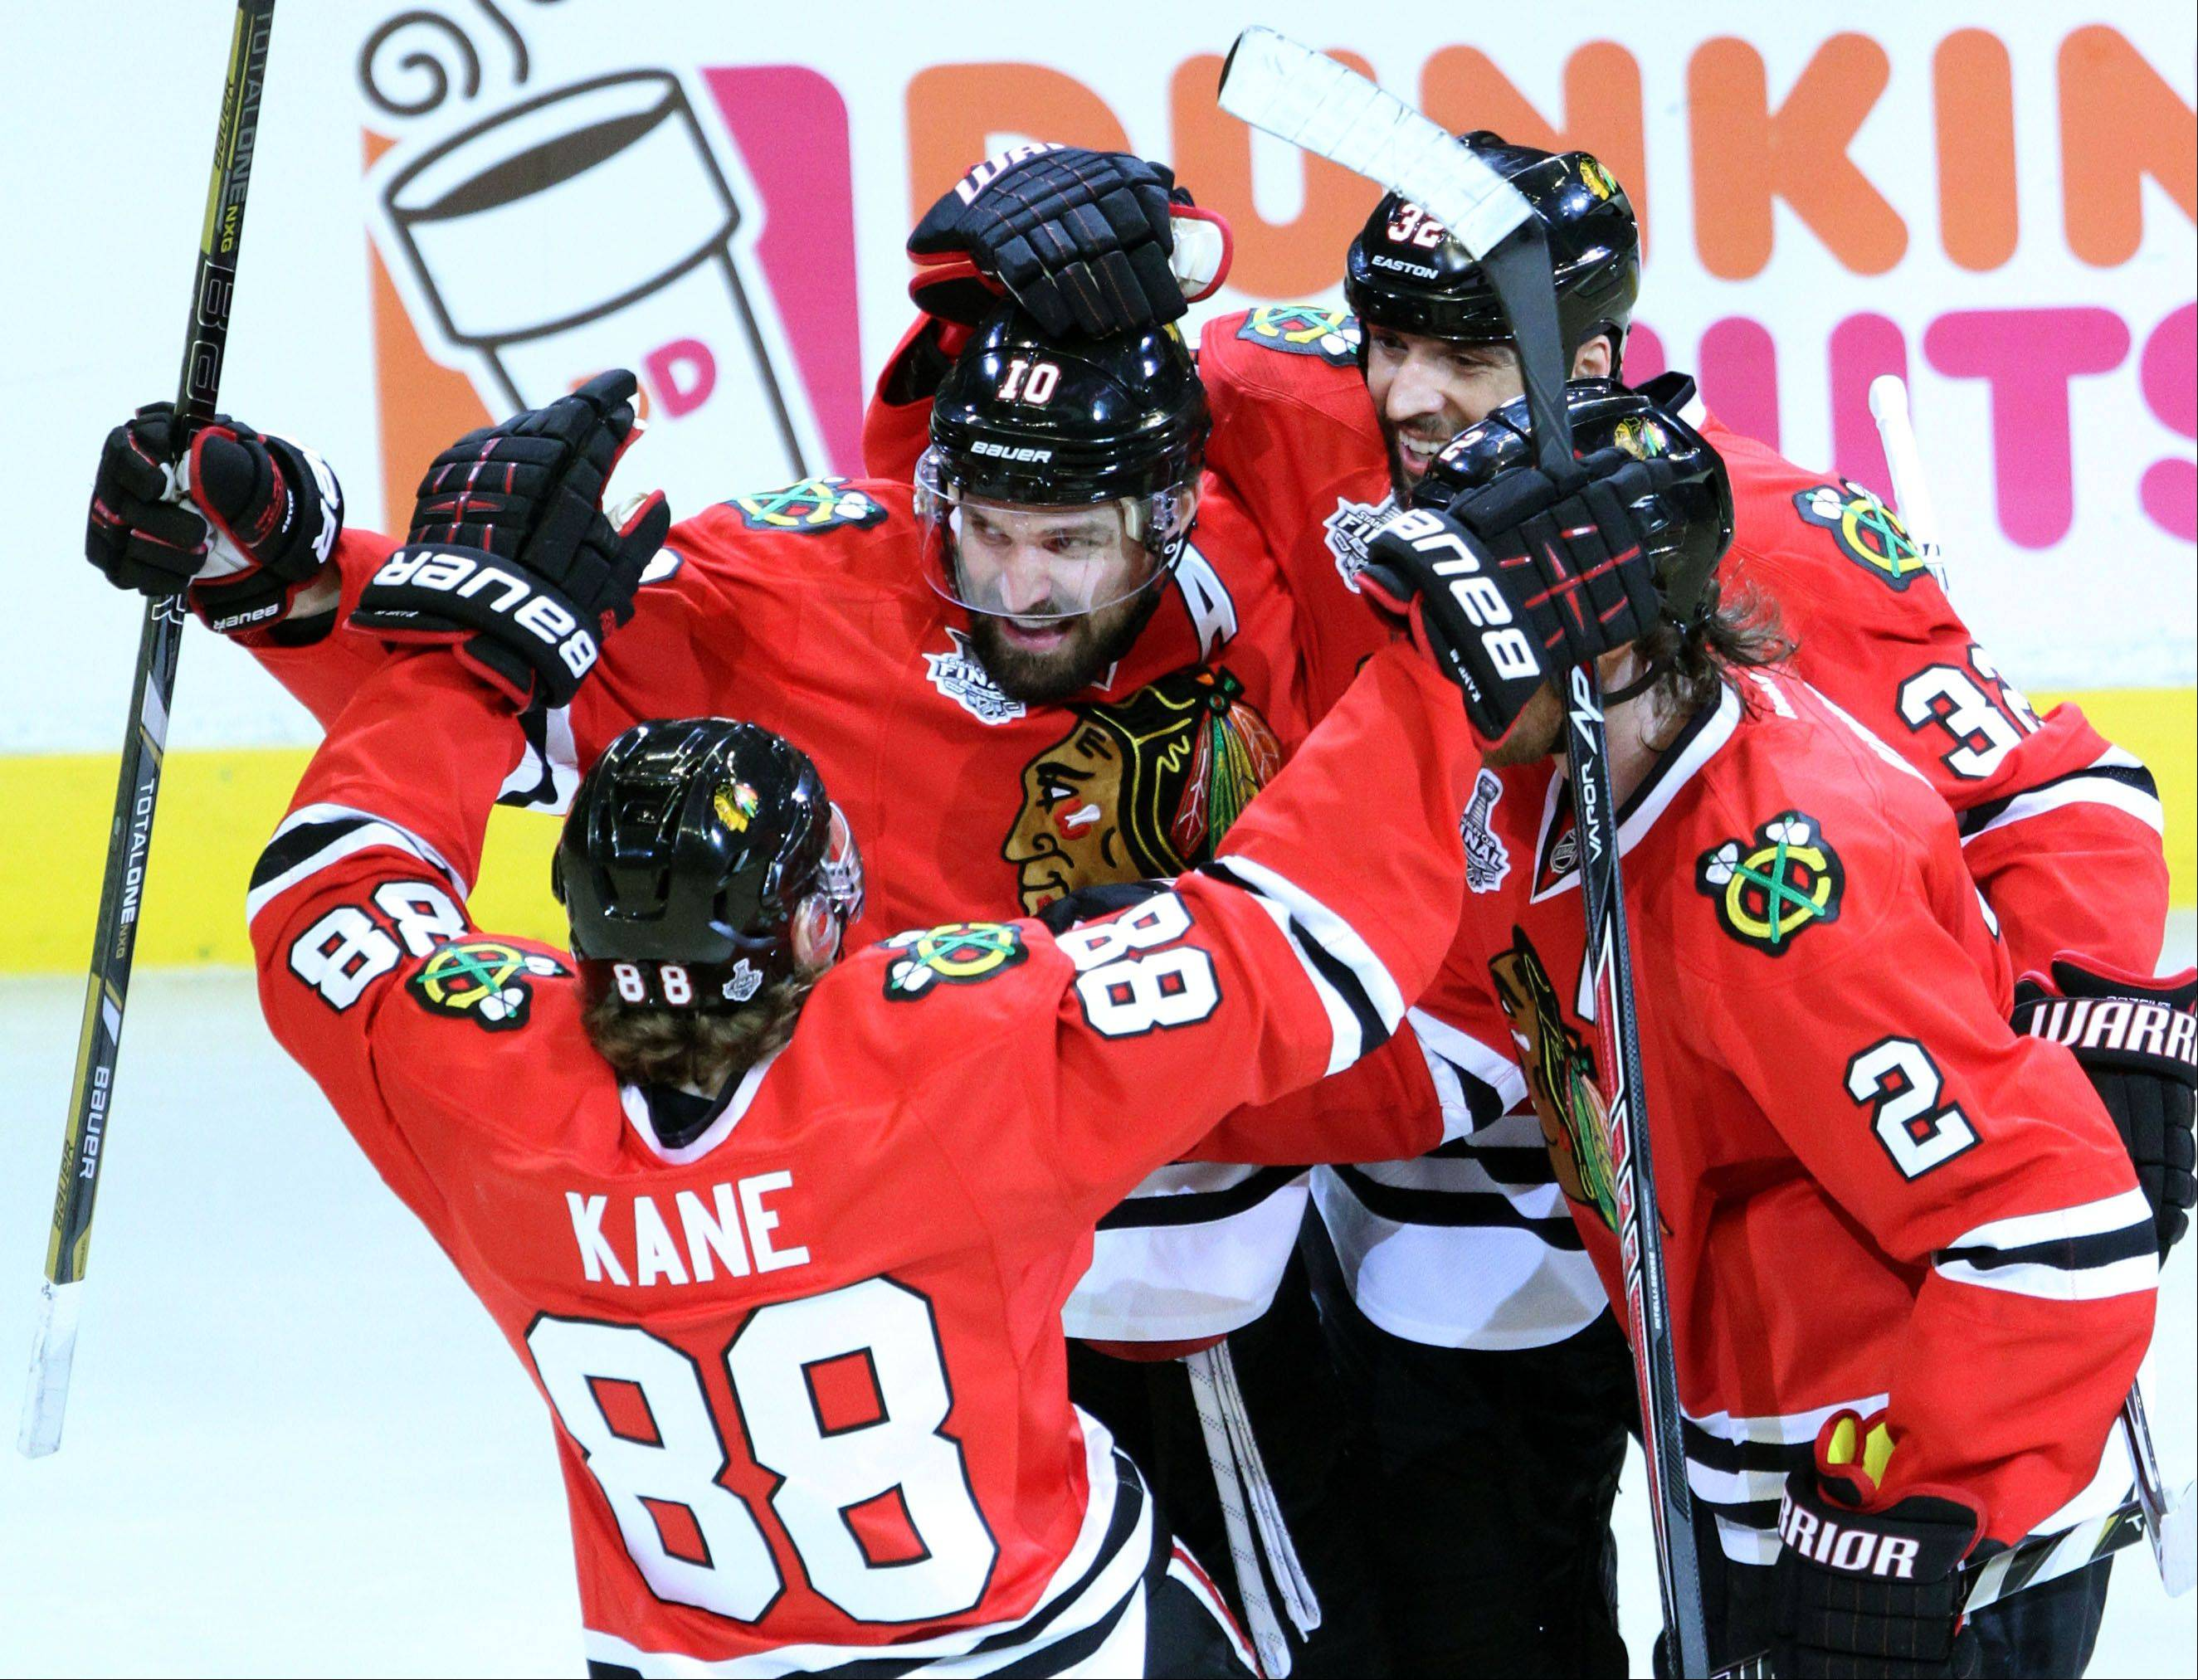 Patrick Sharp, here getting a hug from Patrick Kane and his teammates after scoring in Game 2 of the Stanley Cup Finals, has 10 playoff goals to lead the Hawks into Game 5 against the Boston Bruins at the United Center on Saturday.